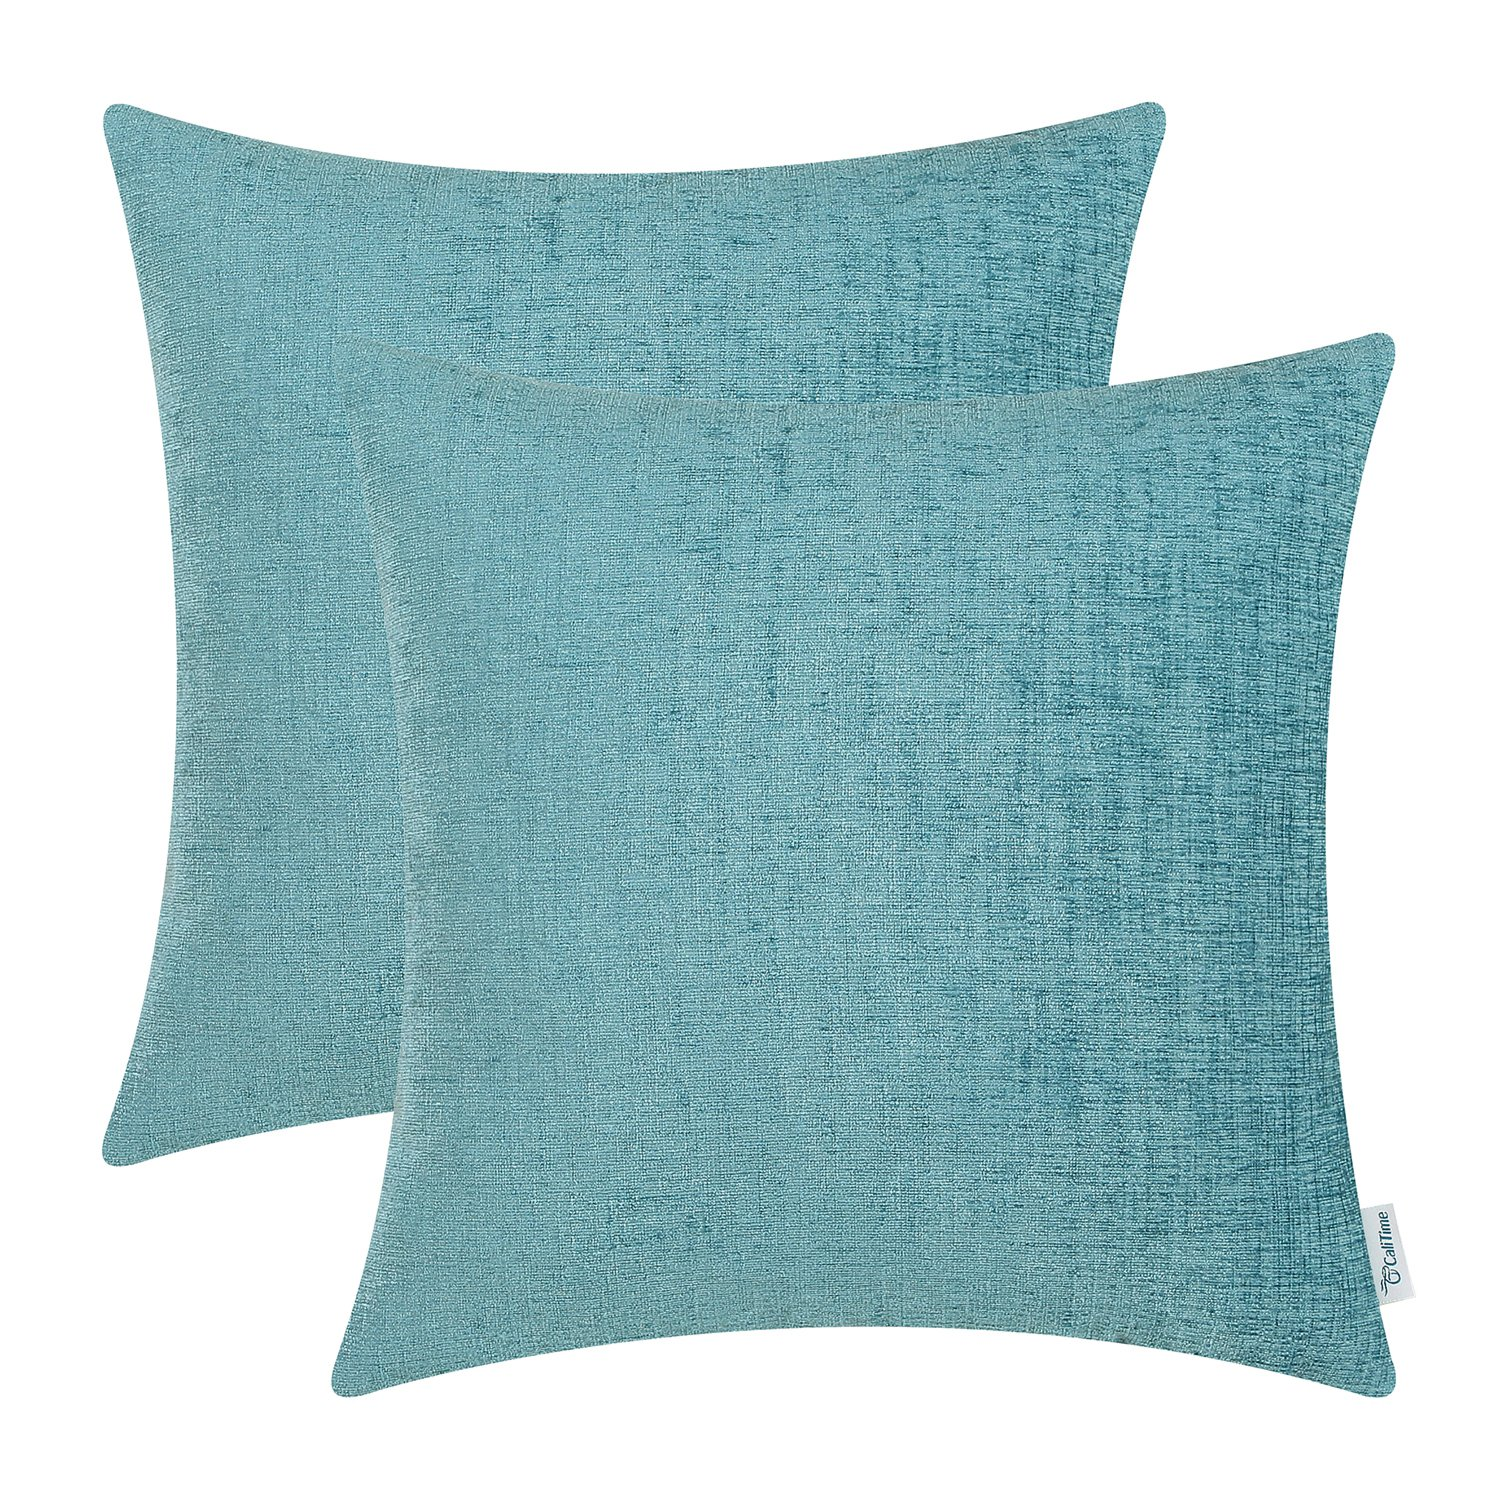 CaliTime Pack of 2 Cozy Throw Pillow Covers Cases Couch Sofa Home Decoration Solid Dyed Soft Chenille 18 X 18 inches Teal